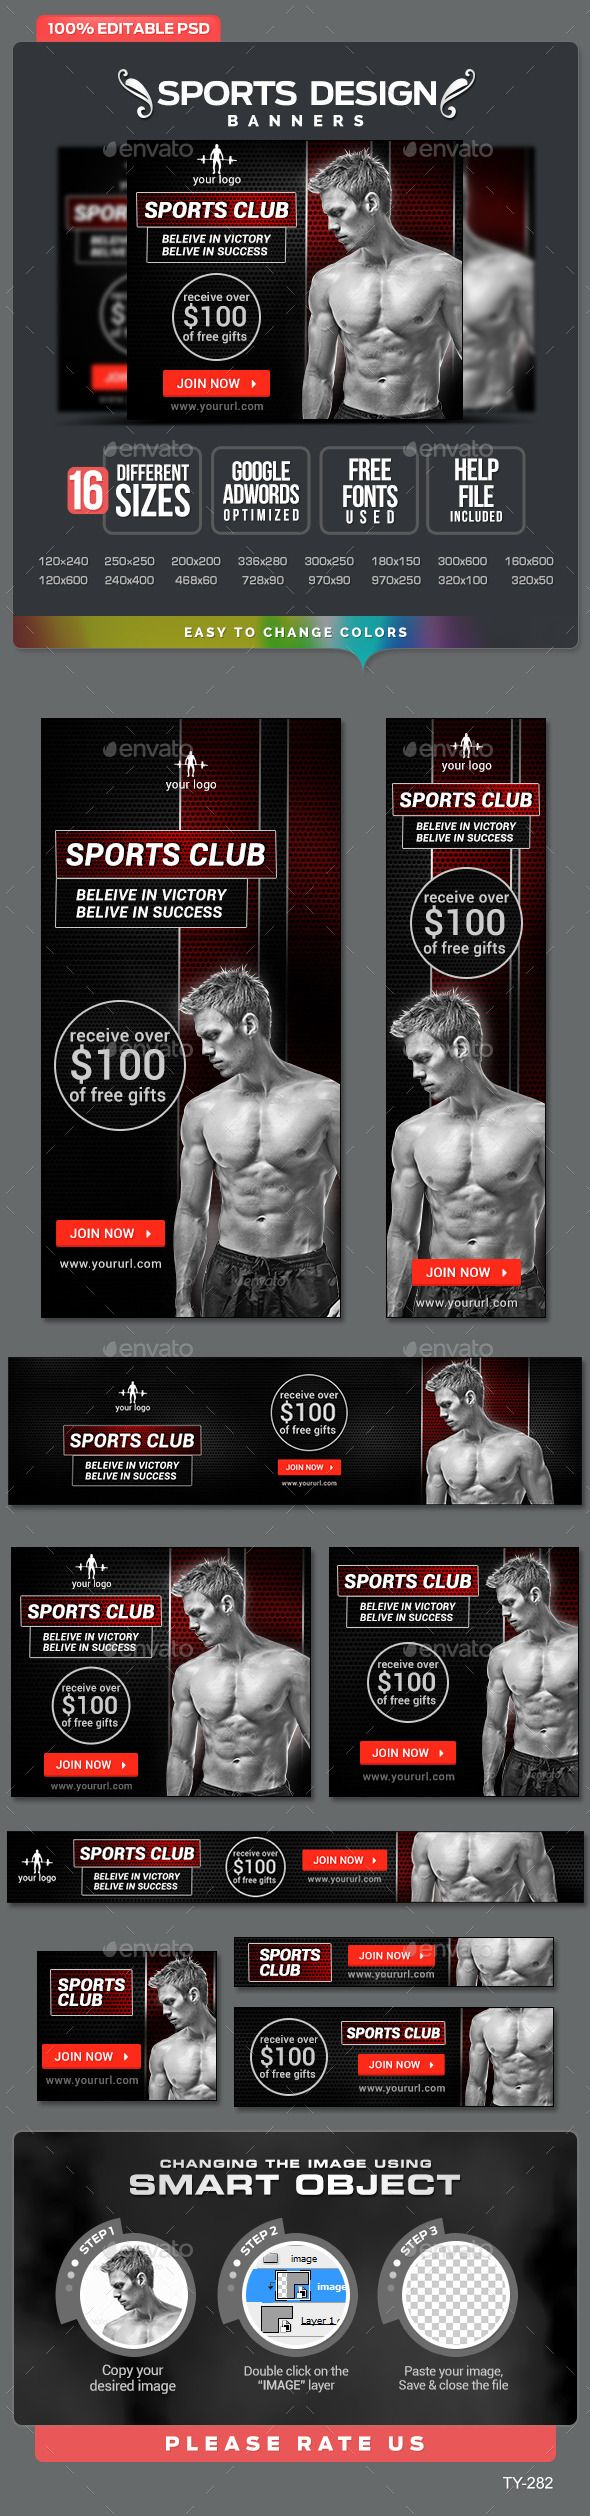 Sports Banners Template | #sportbanner | Download: http://graphicriver.net/item/sports-banners/10364150?ref=ksioks